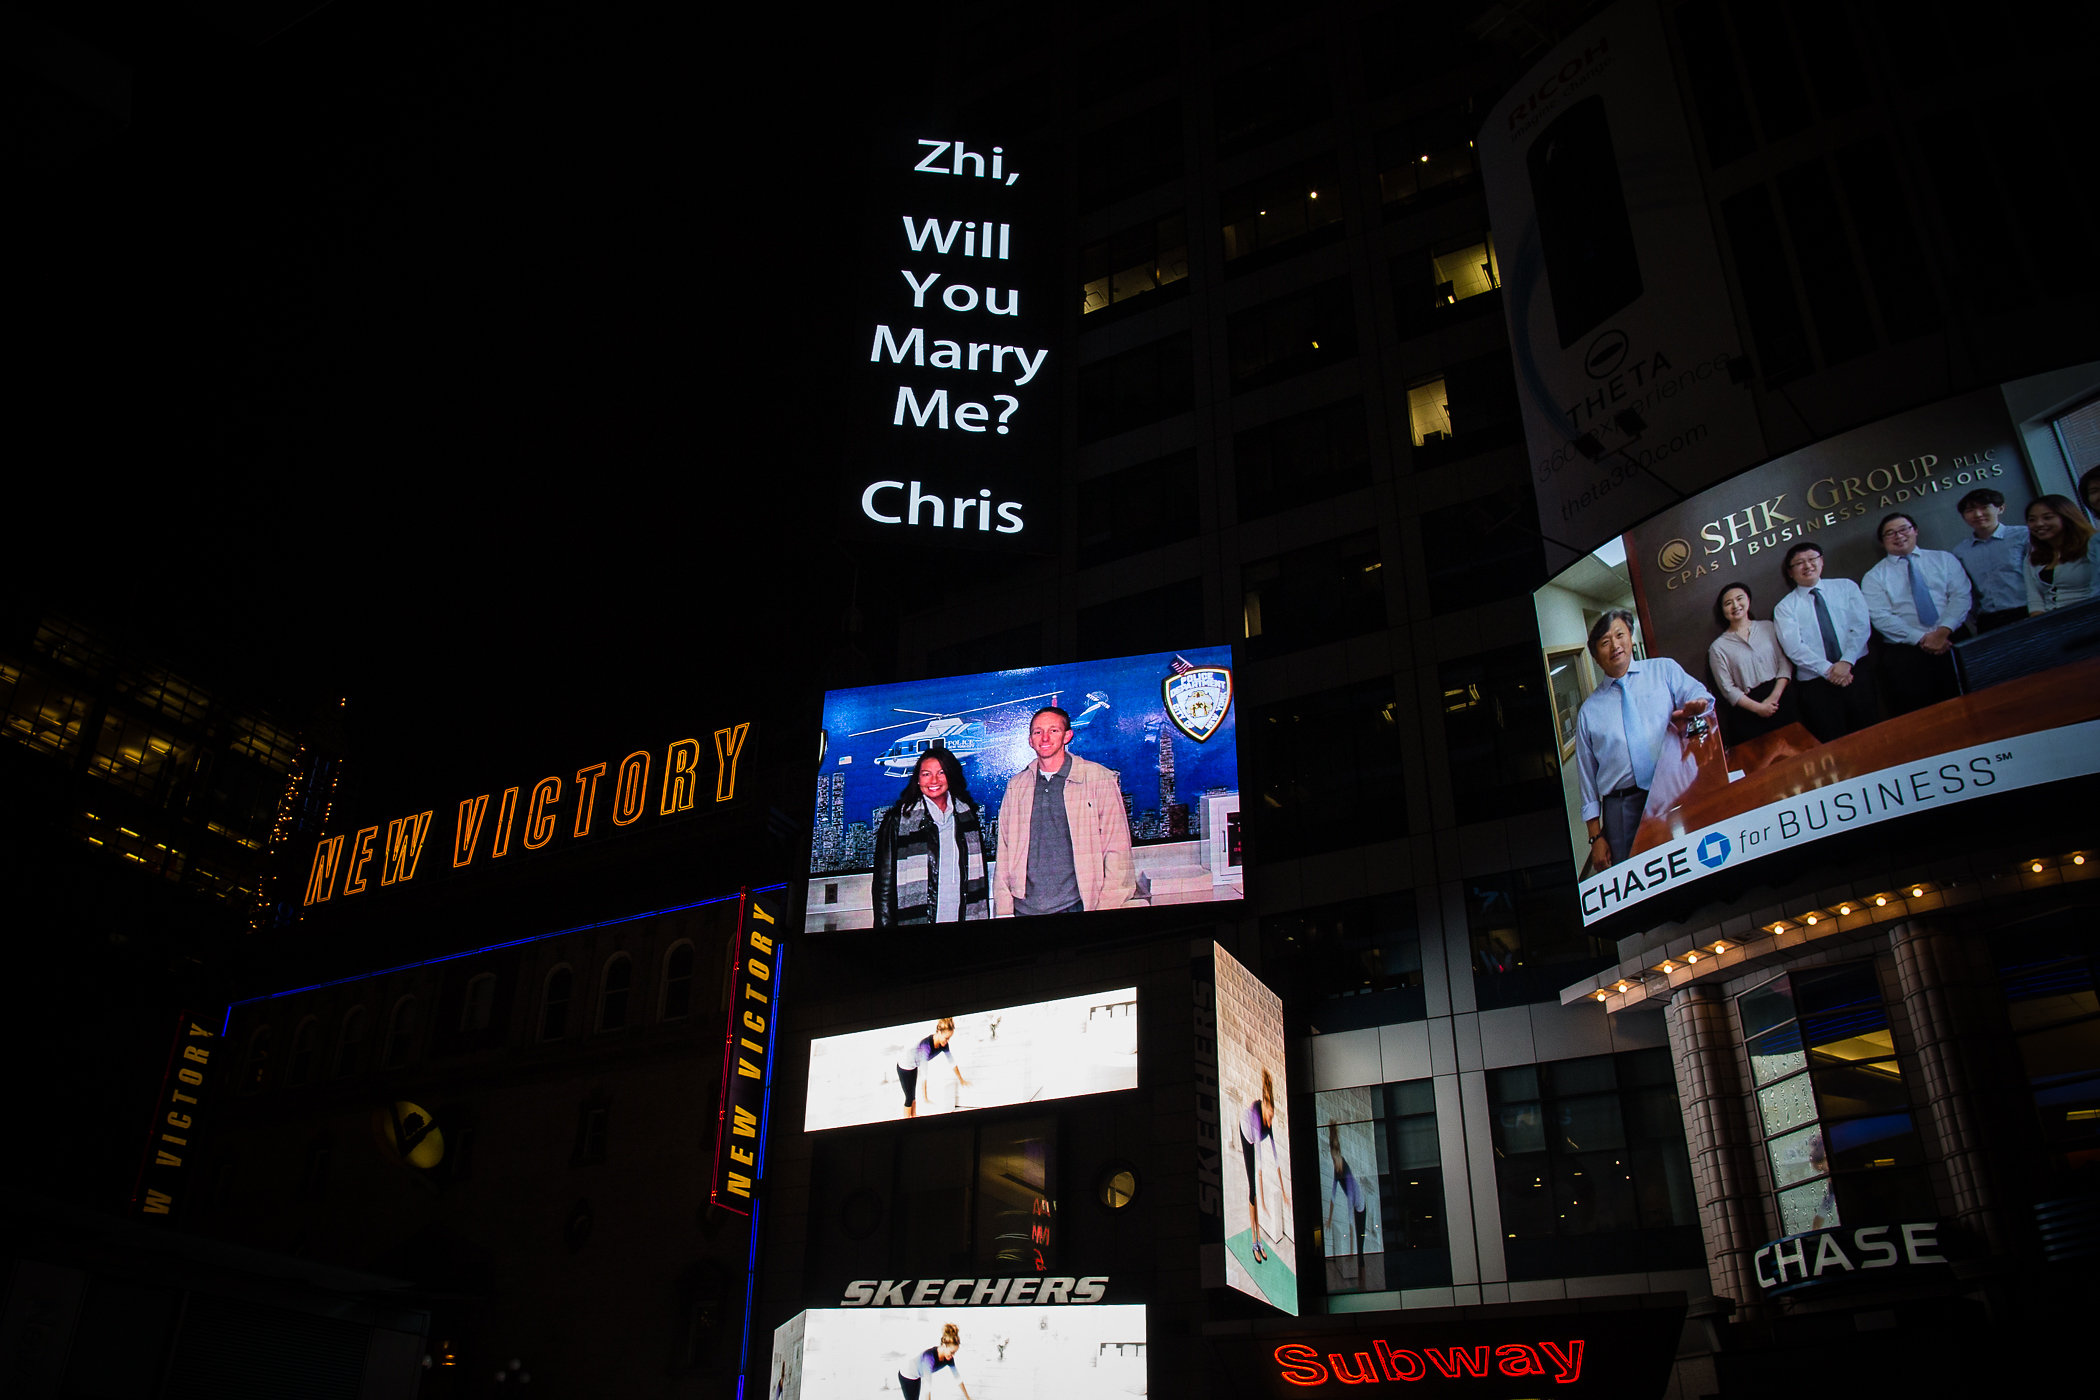 new-york-times-square-2.jpg